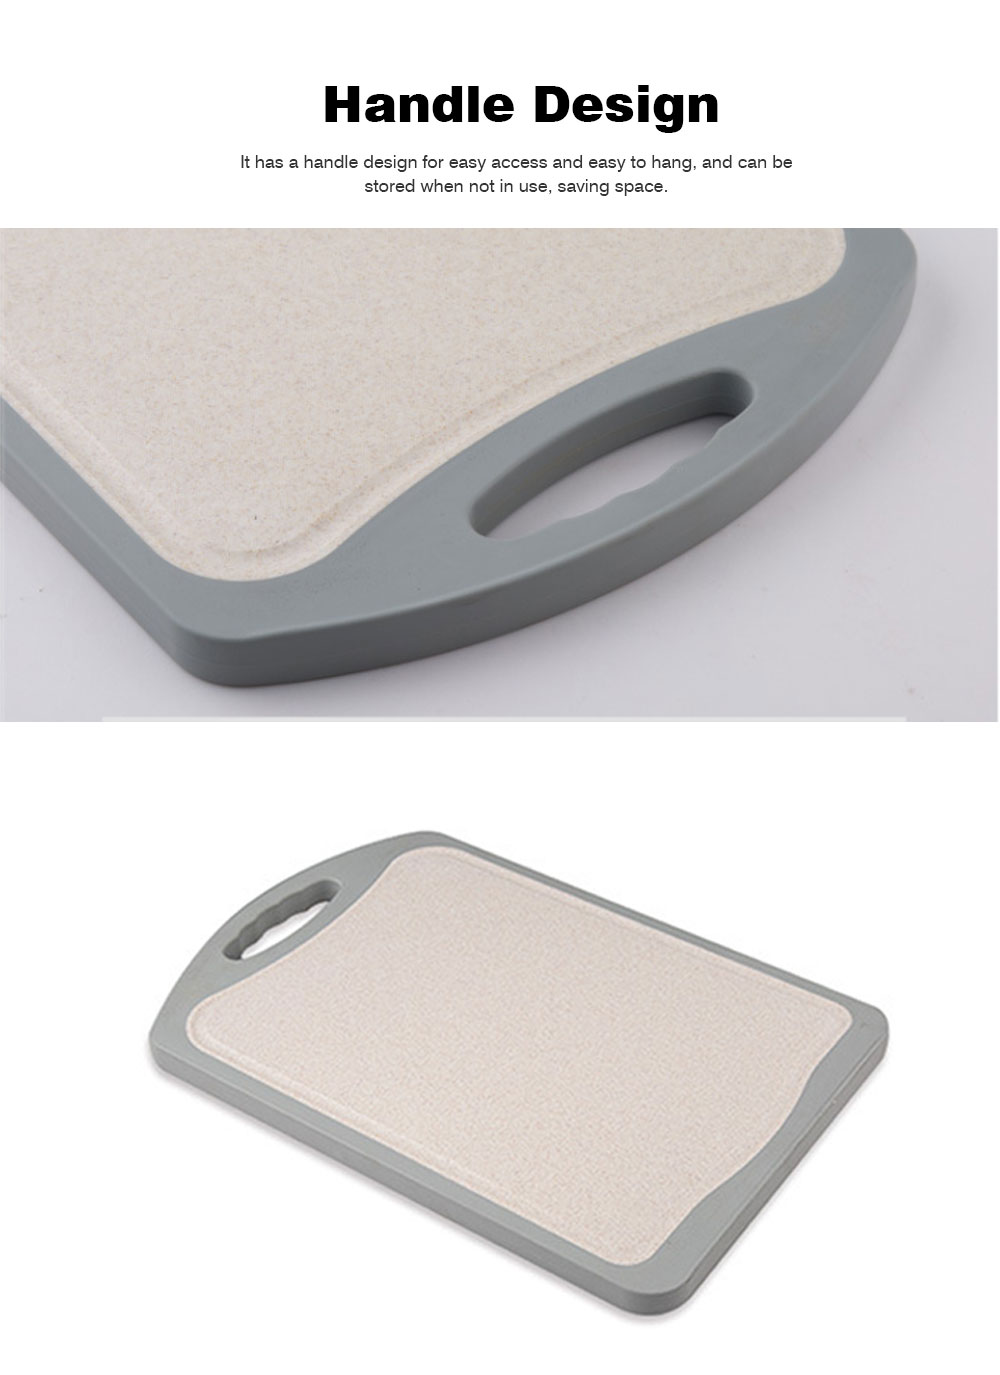 Whole Bamboo Fiber Composite Cutting Board, Healthy Non-slip Cutting Board for Cutting Cooked Food, Vegetables, Fruits 5